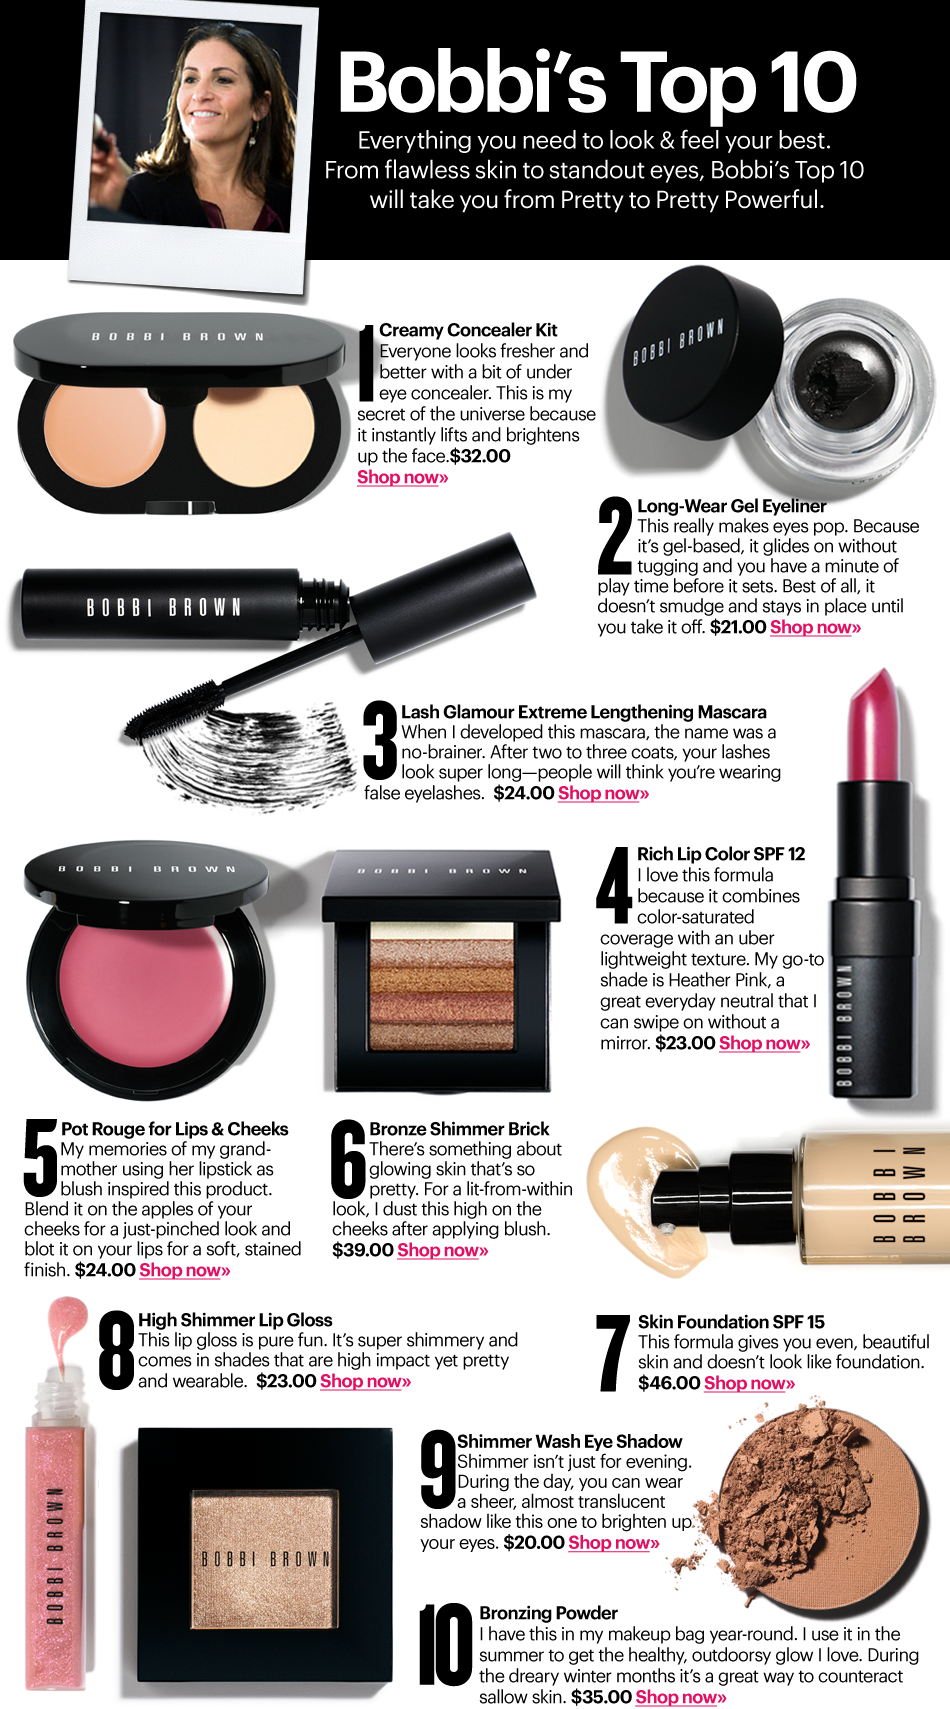 924dd98203e Bobbi Brown's Top 10 products for your basic cosmetics